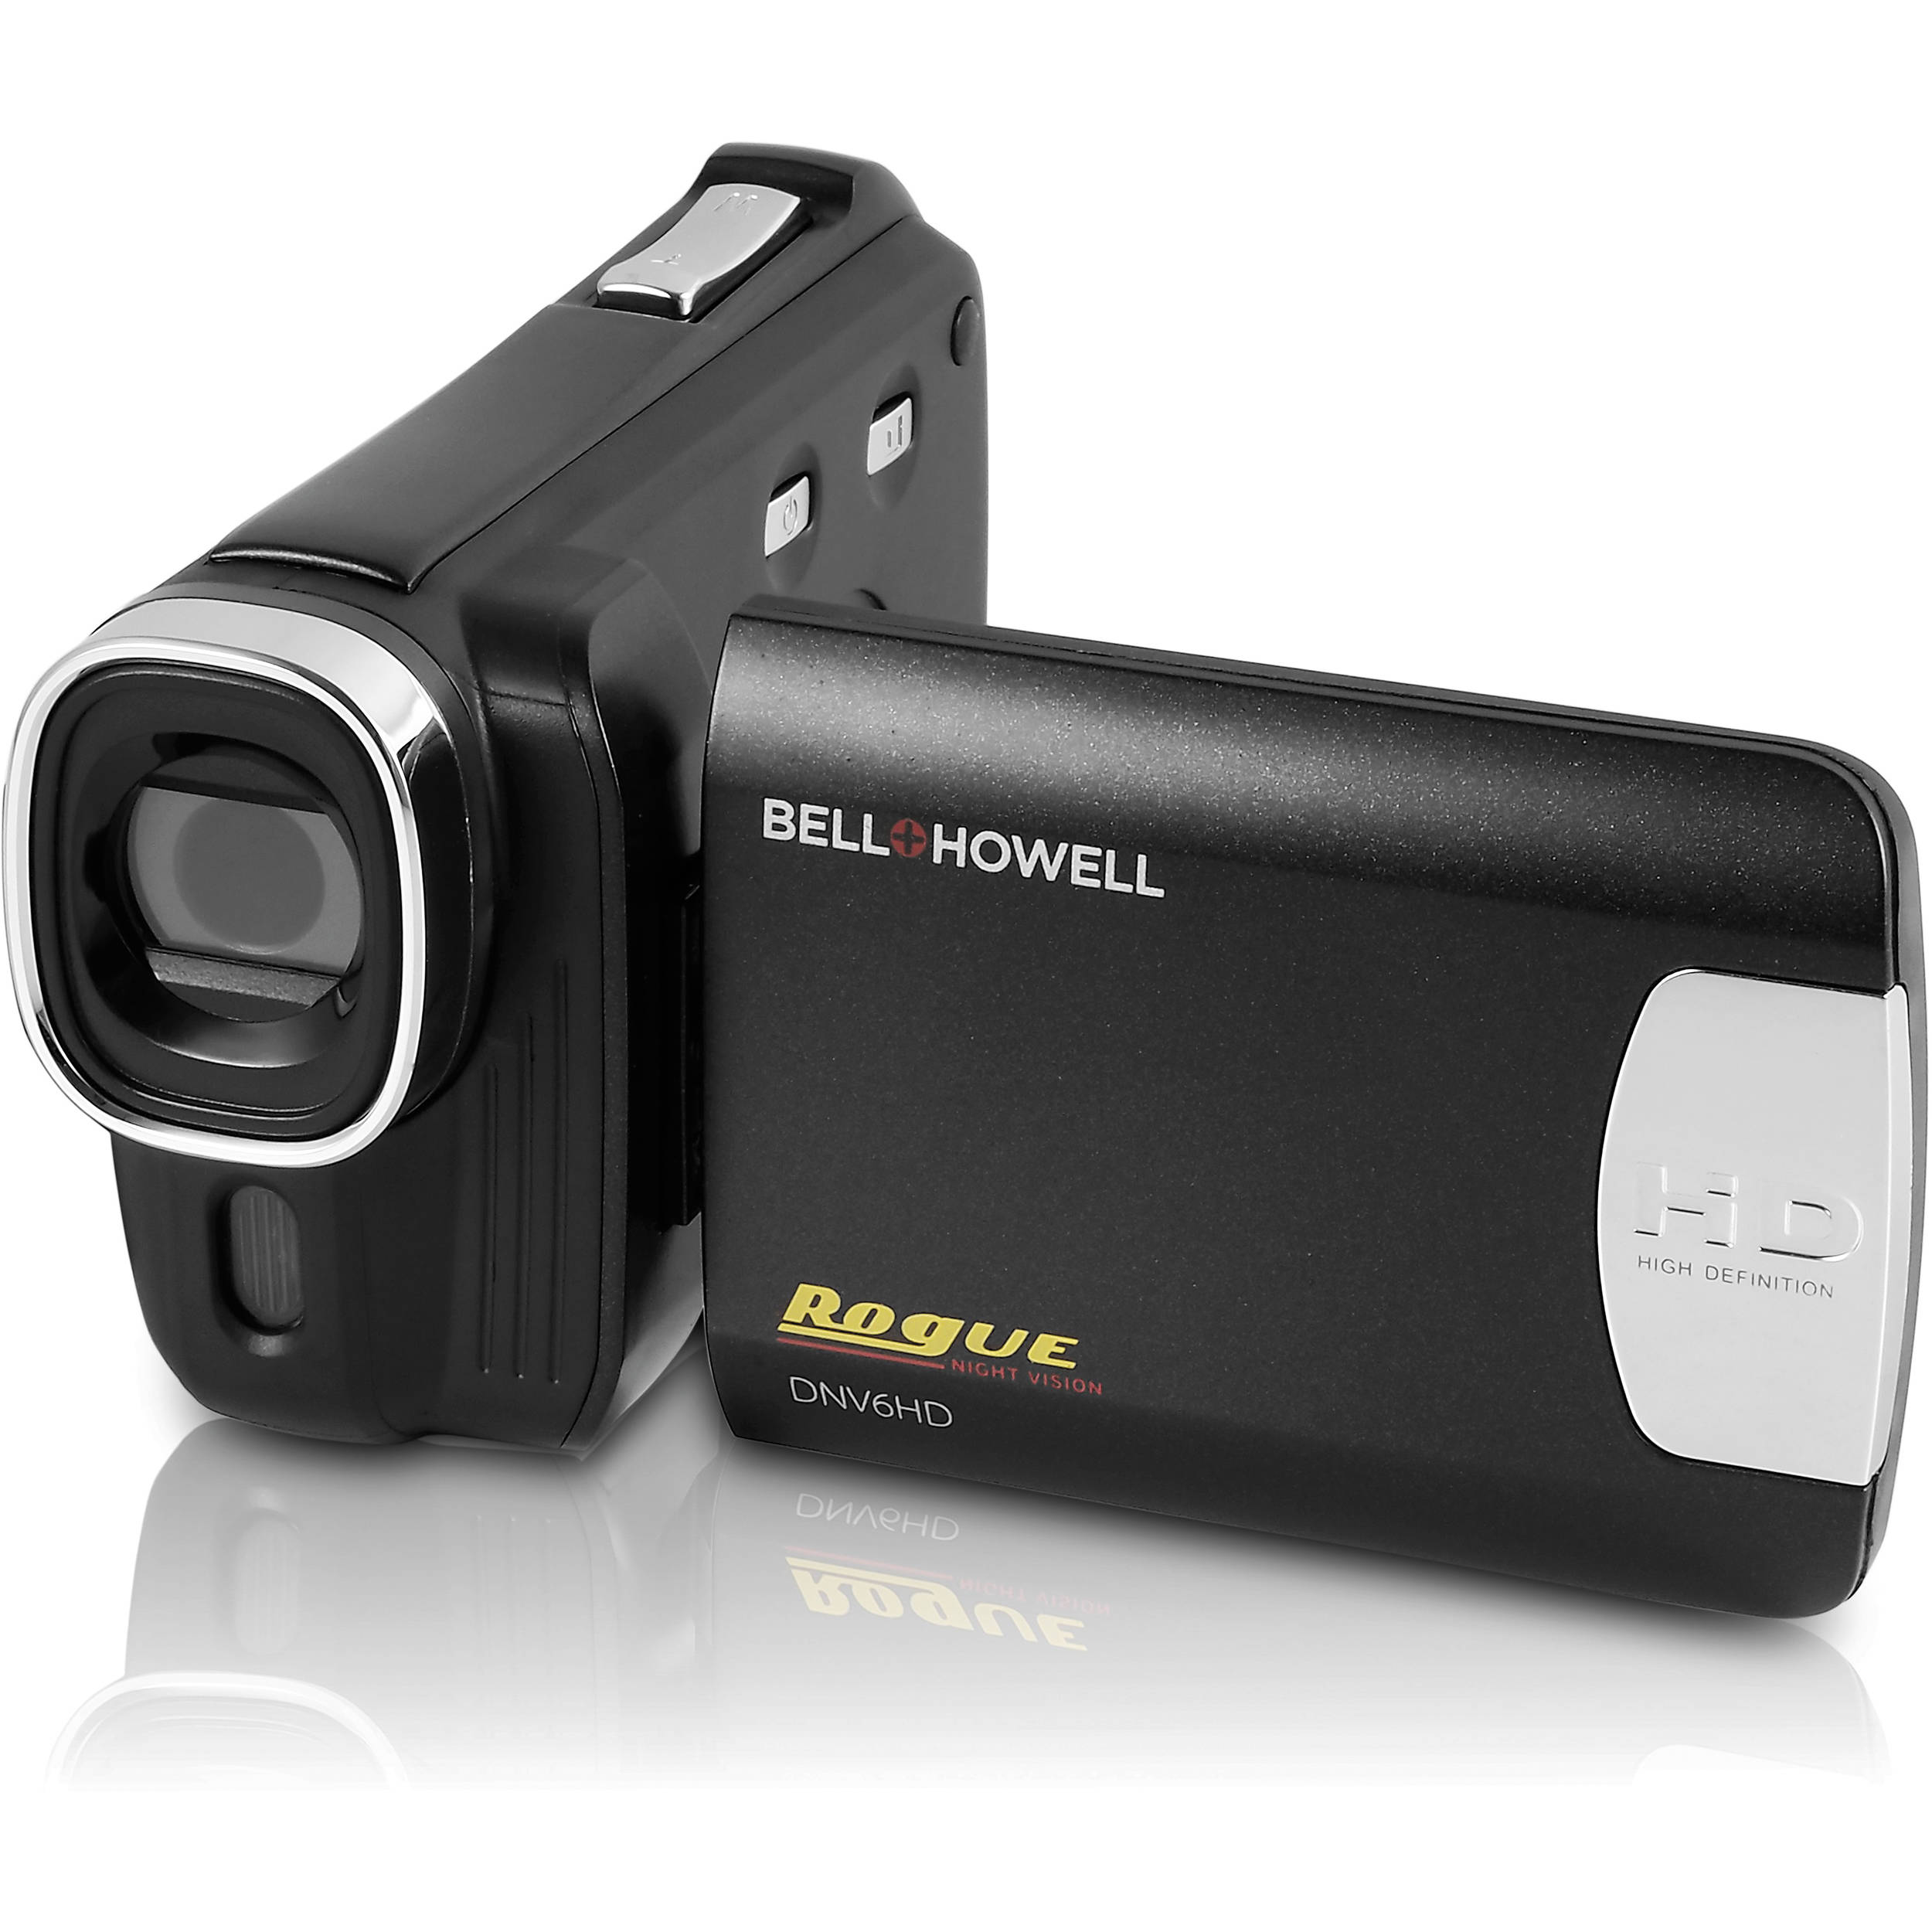 Bell \u0026 Howell Rogue DNV6HD 1080p HD Night Vision DNV6HD-BK B\u0026H